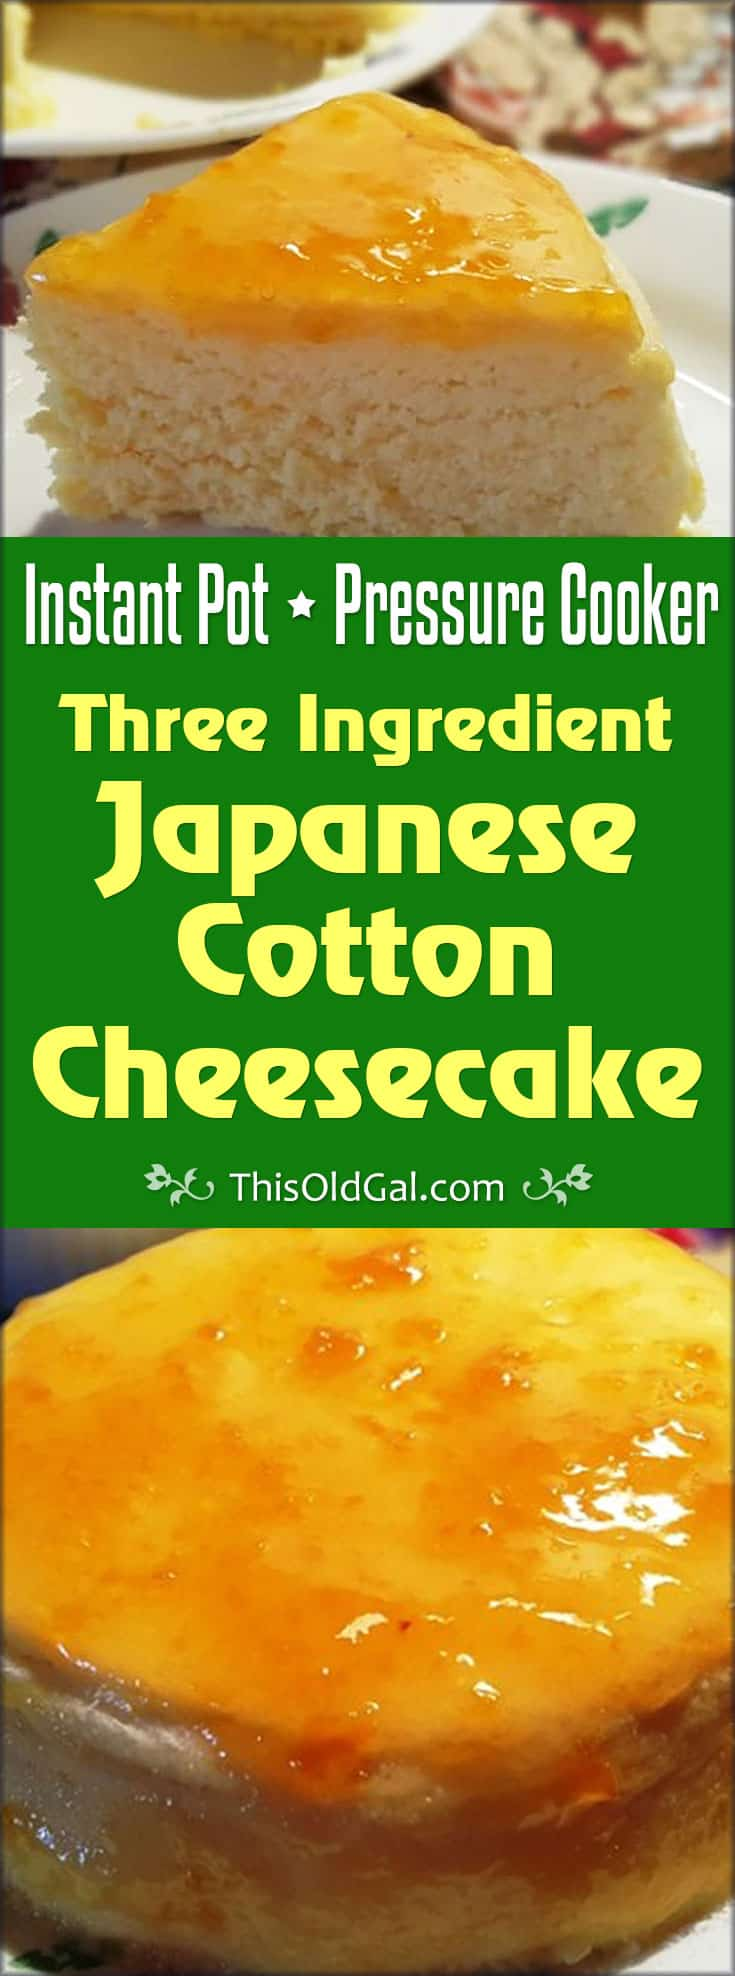 Pressure Cooker Three Ingredient Japanese Cotton Cheesecake